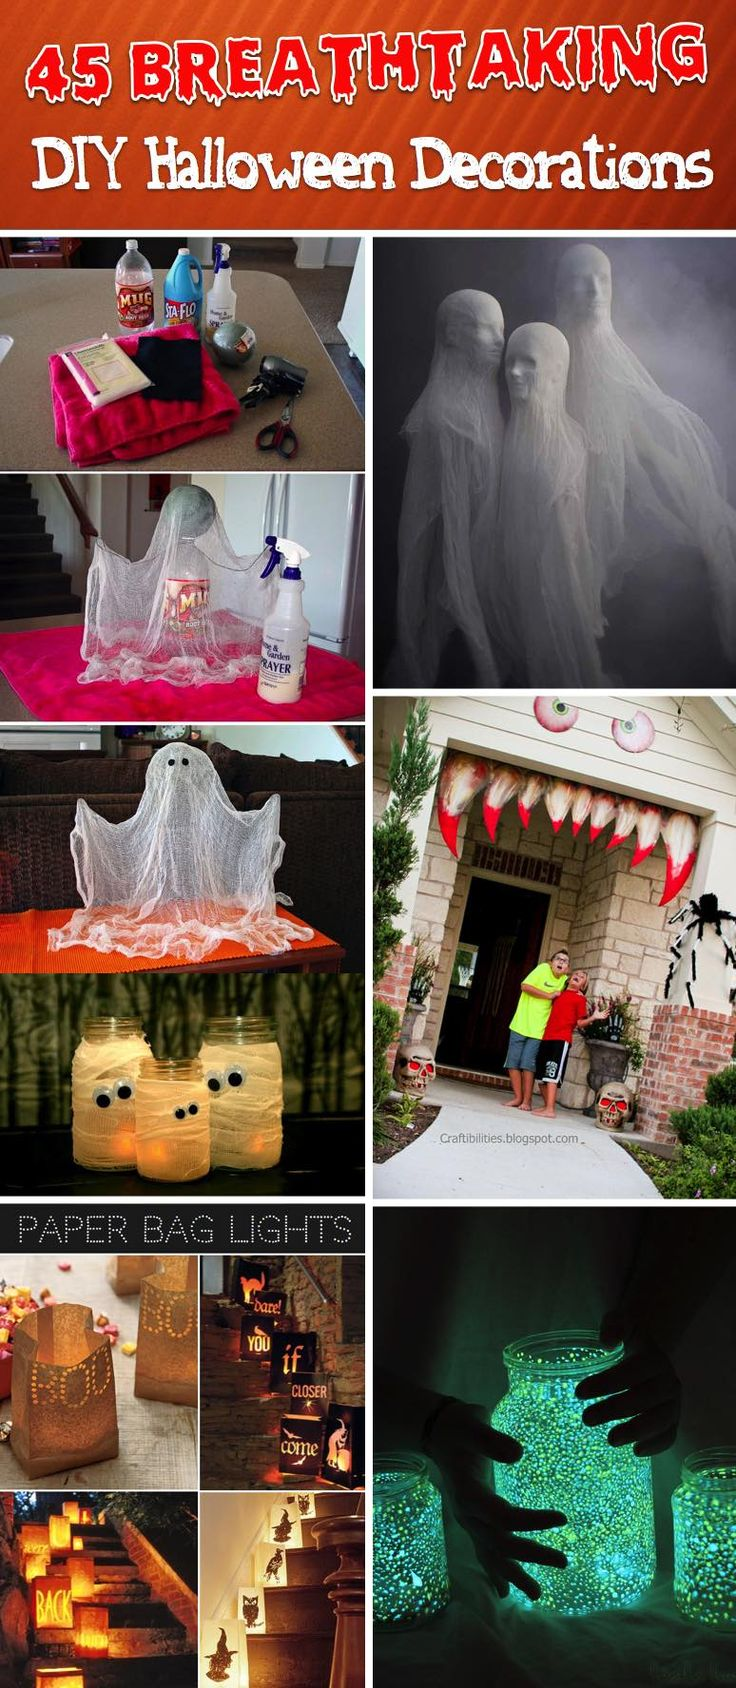 45 Most Amazing DIY Halloween Decorations You can Effortlessly Come up With